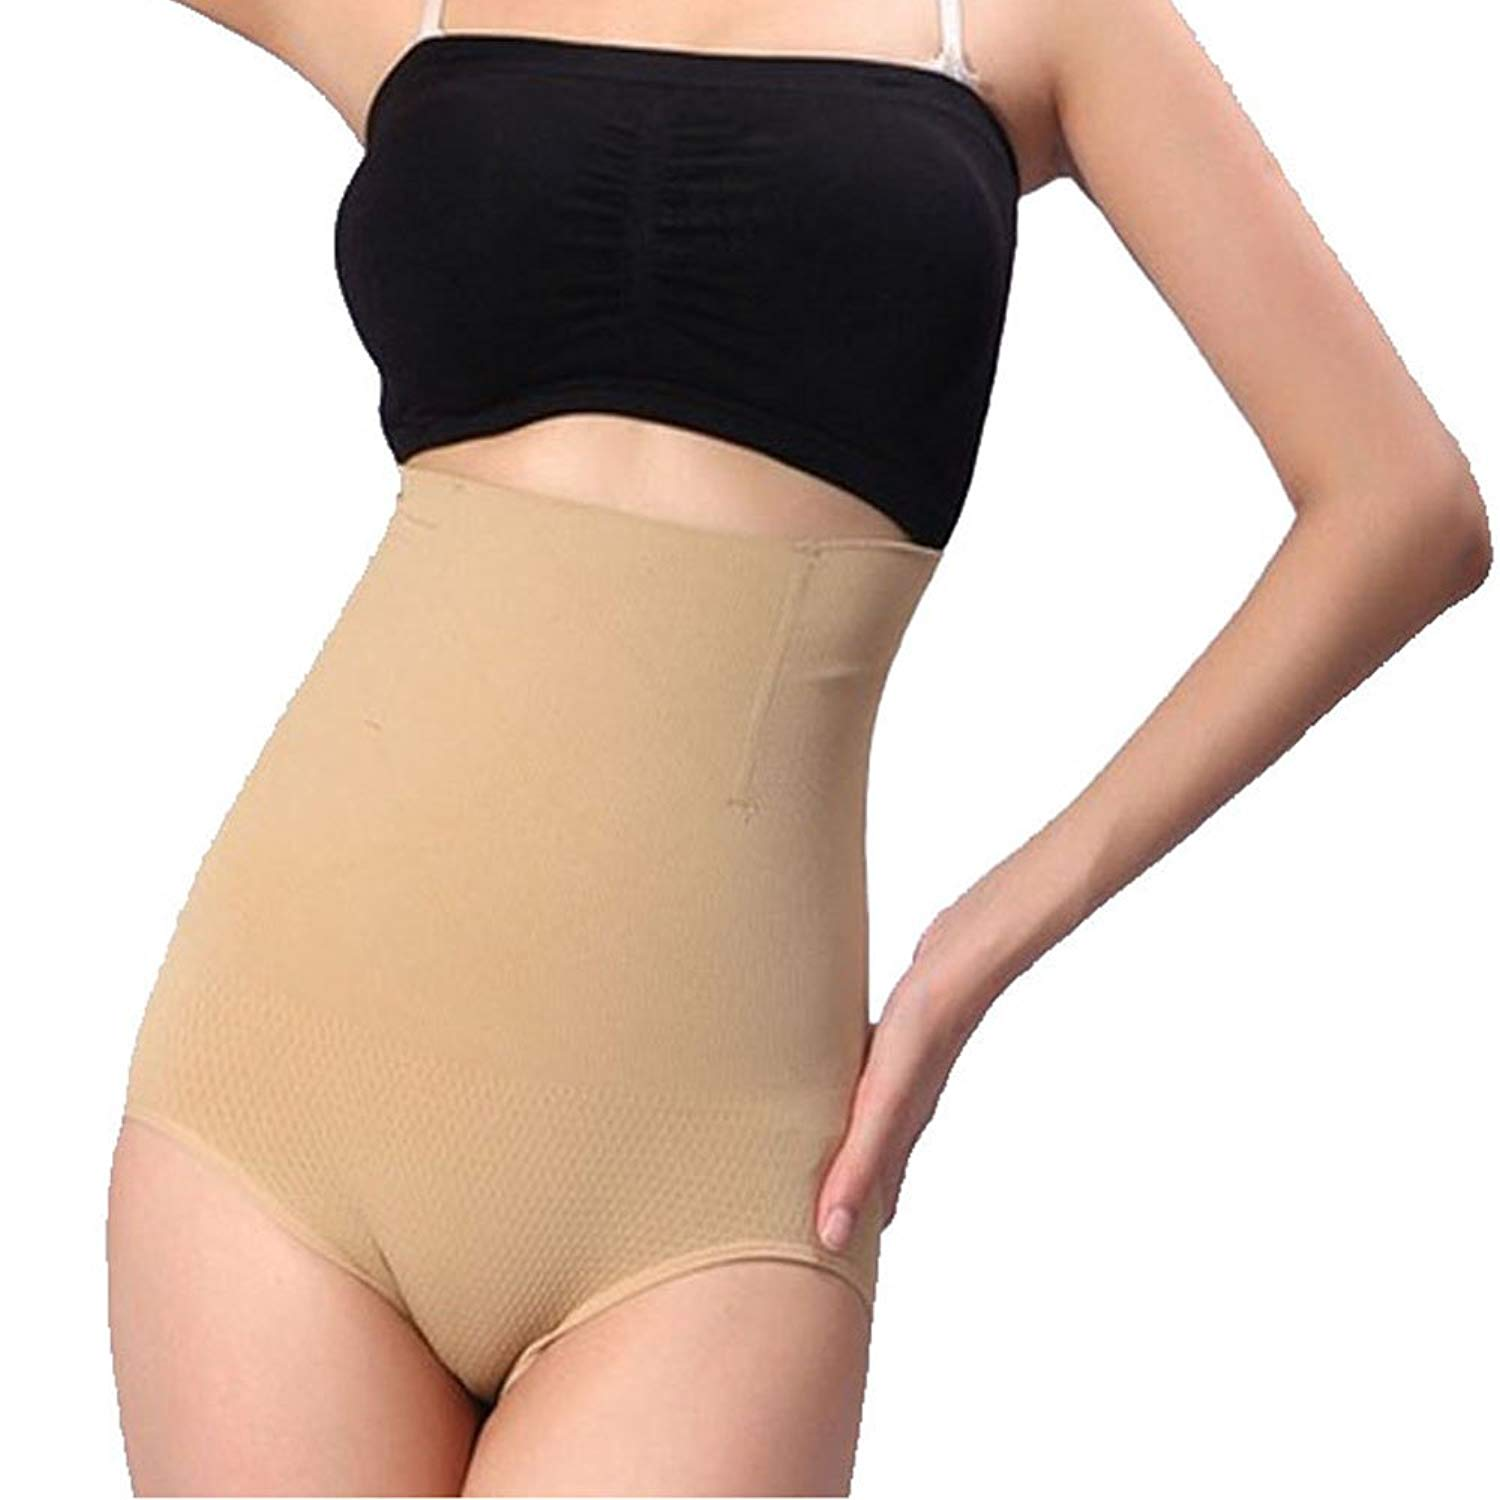 7558d0659d696 Get Quotations · BigEasyStores New You High Waist Slimming Underwear Body  Shaper Tummy Flattener Panty